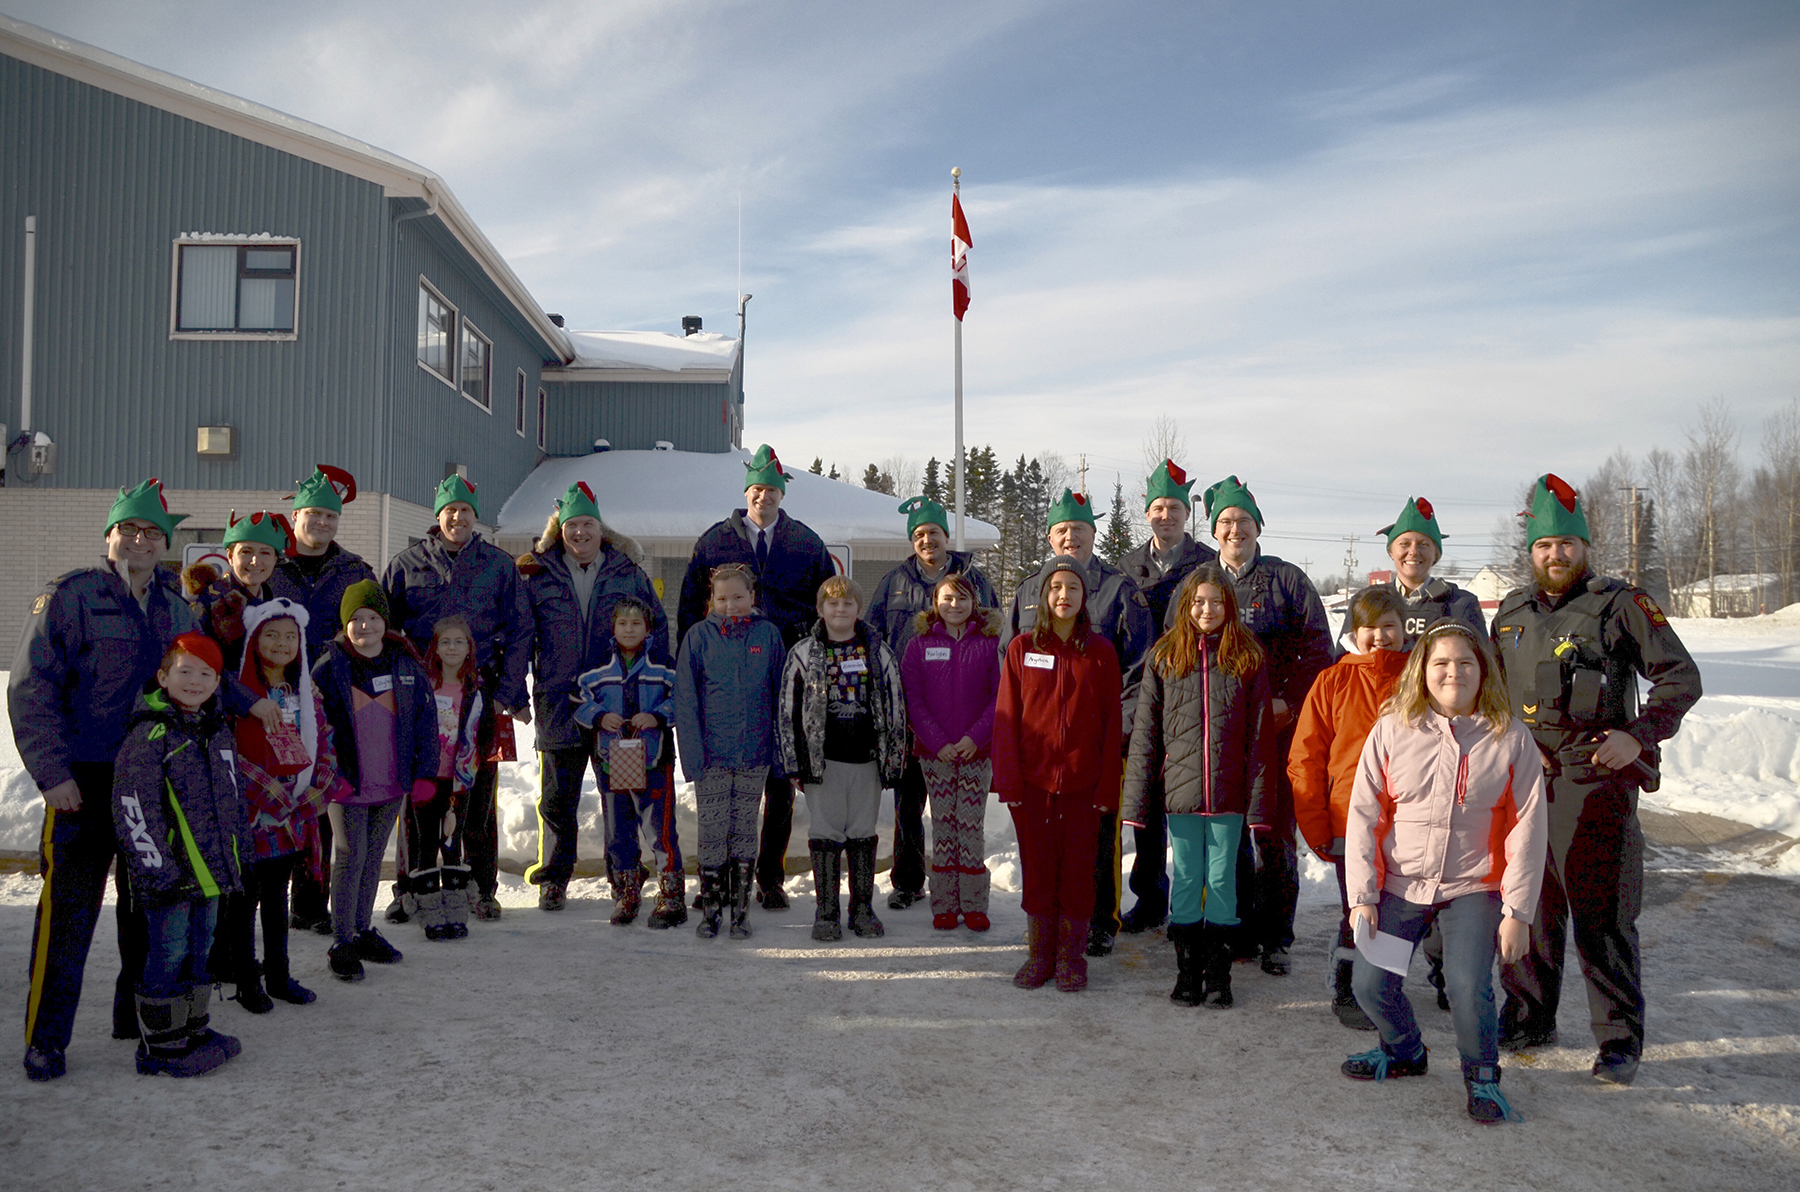 Twelve young people from Happy Valley-Goose Bay, Labrador, gather with their personal elves from the local area during Shop with a Cop day on December 3, 2017. PHOTO: Submitted